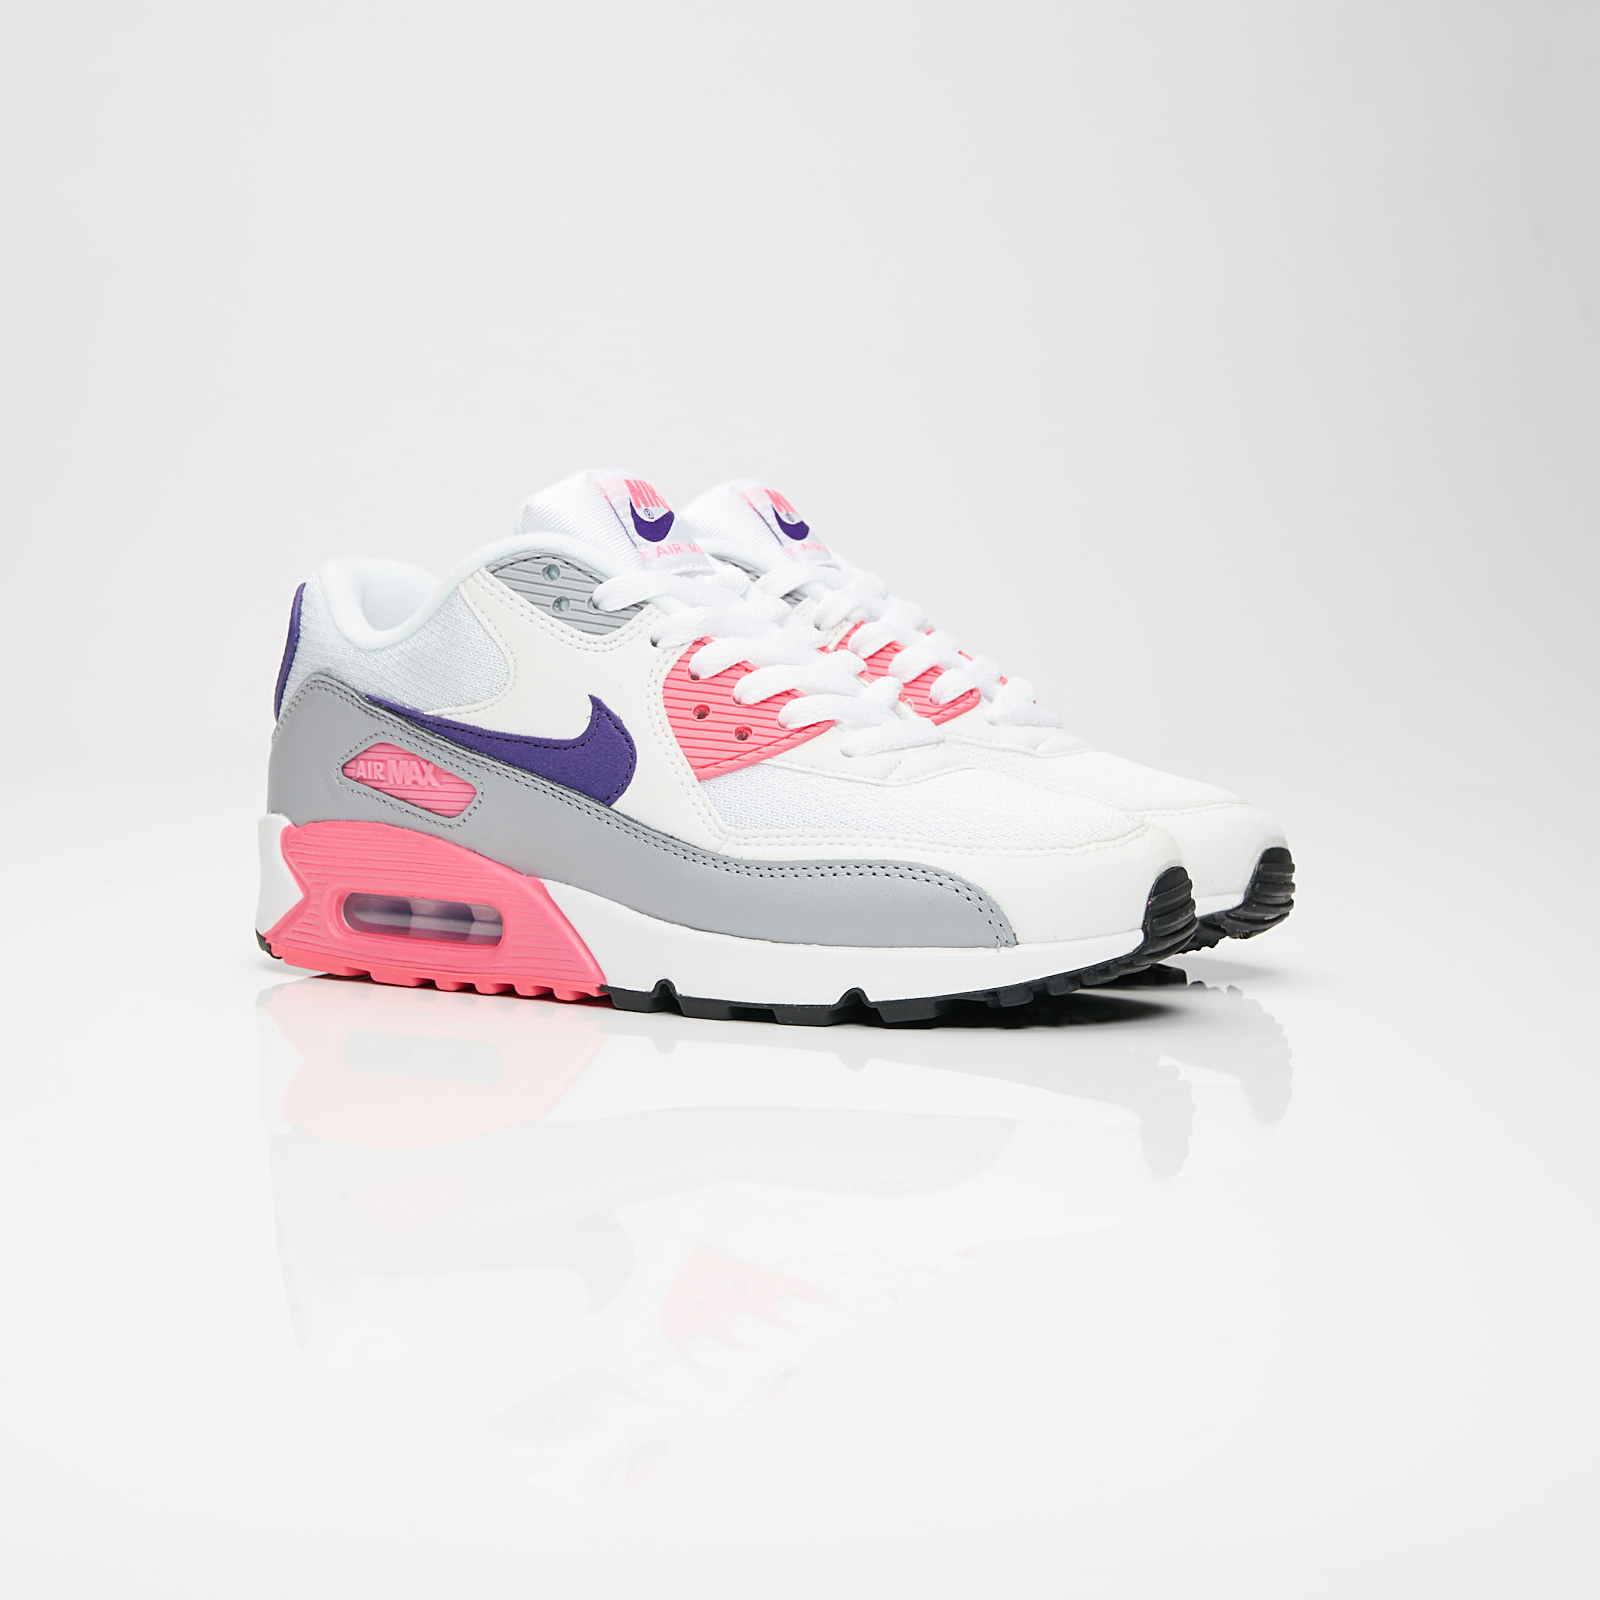 low priced e8a5d 8aef8 Nike Sportswear Wmns Air Max 90